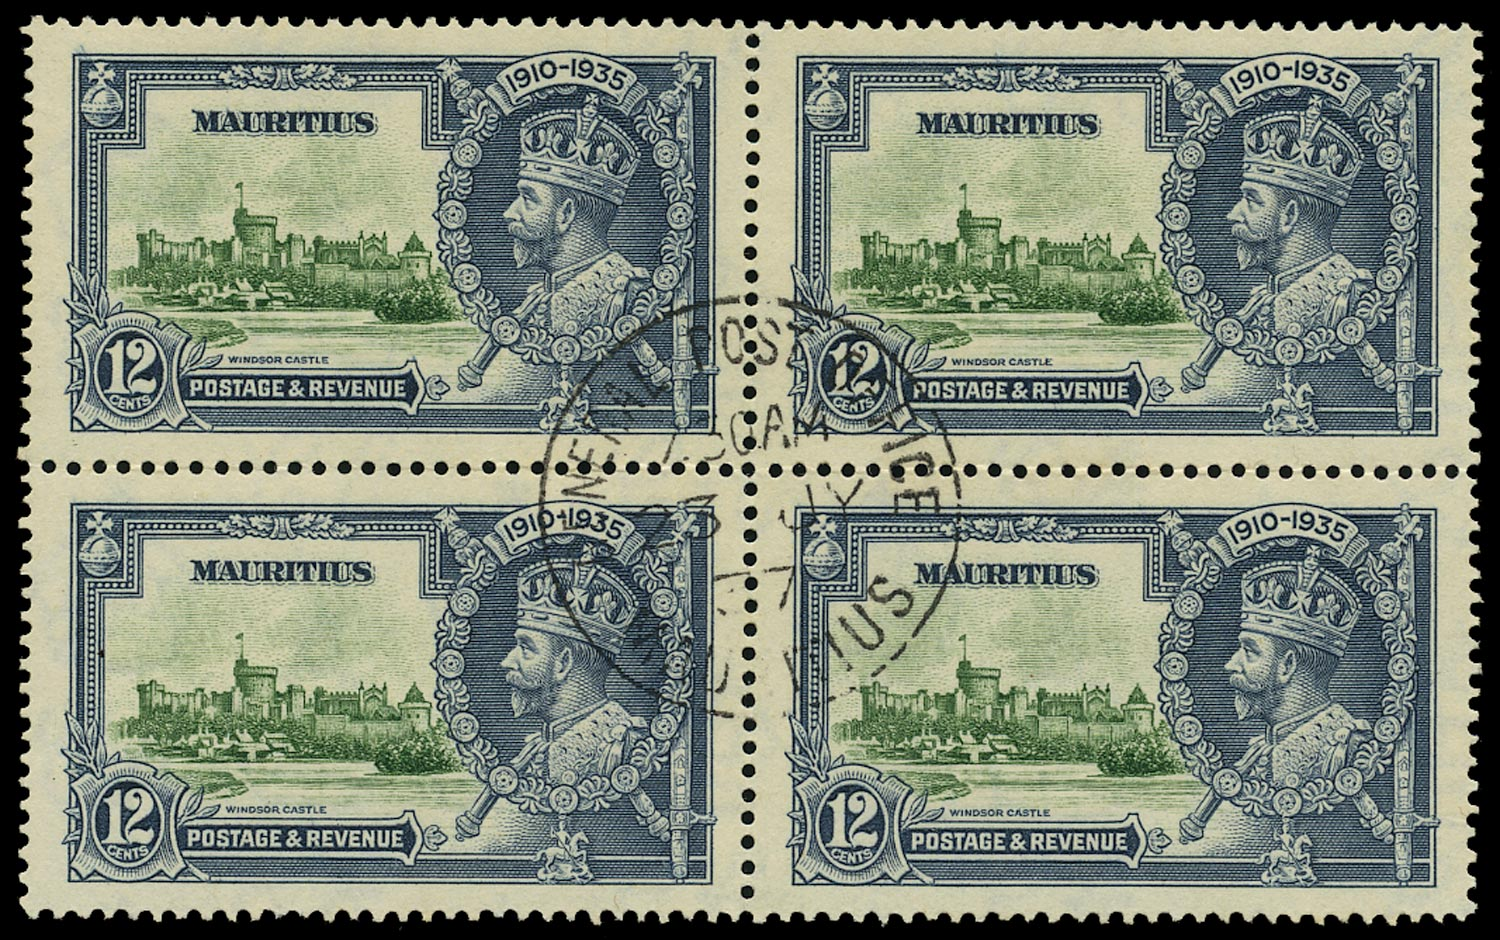 MAURITIUS 1935  SG246f Used Silver Jubilee 12c green and indigo variety Diagonal line by turret